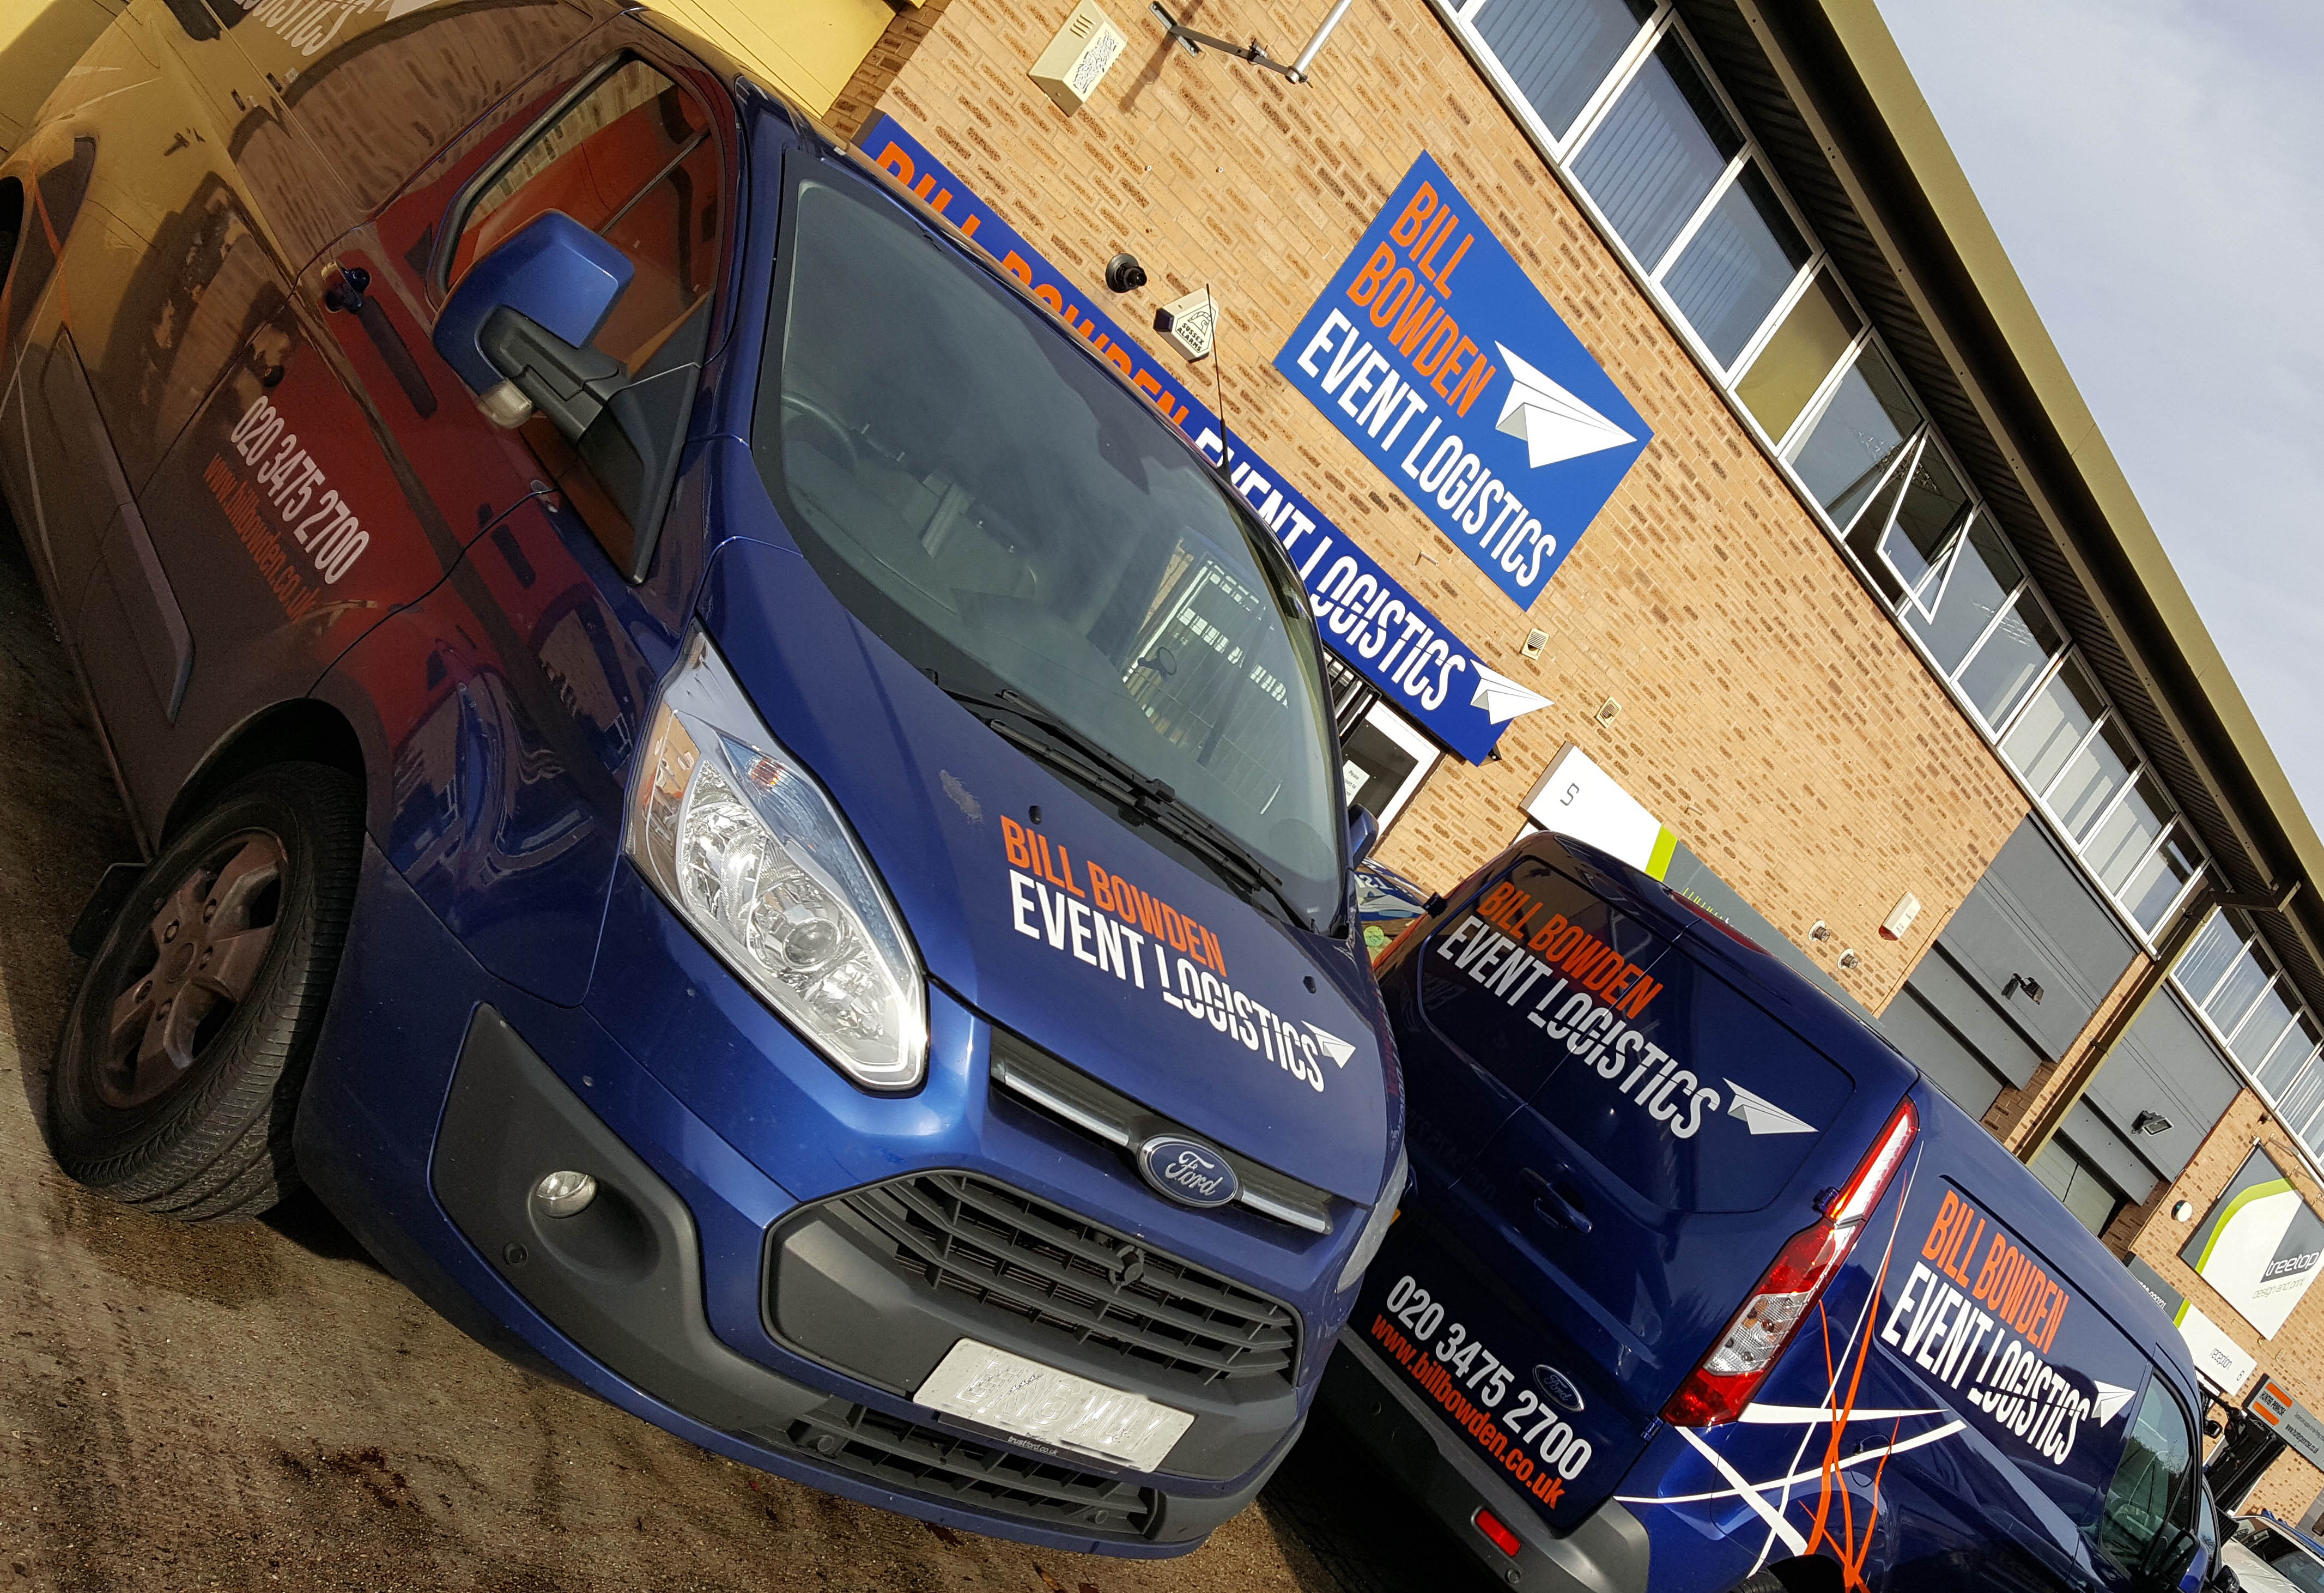 Exhibition courier services specialists Bill Bowden Event Logistics HQ